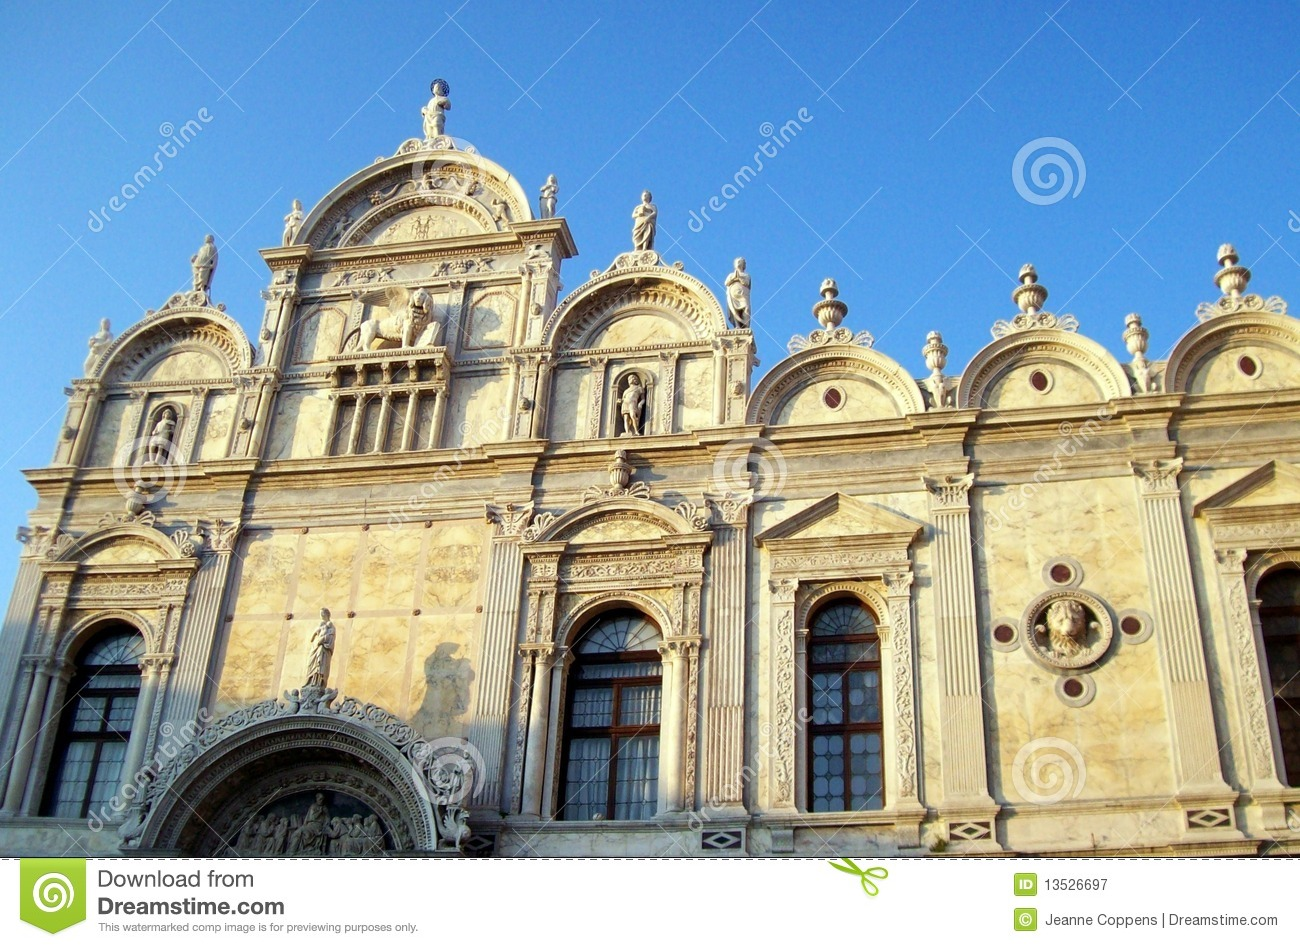 Free CC0 Image: Facade Of Baroque Church Picture. Image: 82950575.